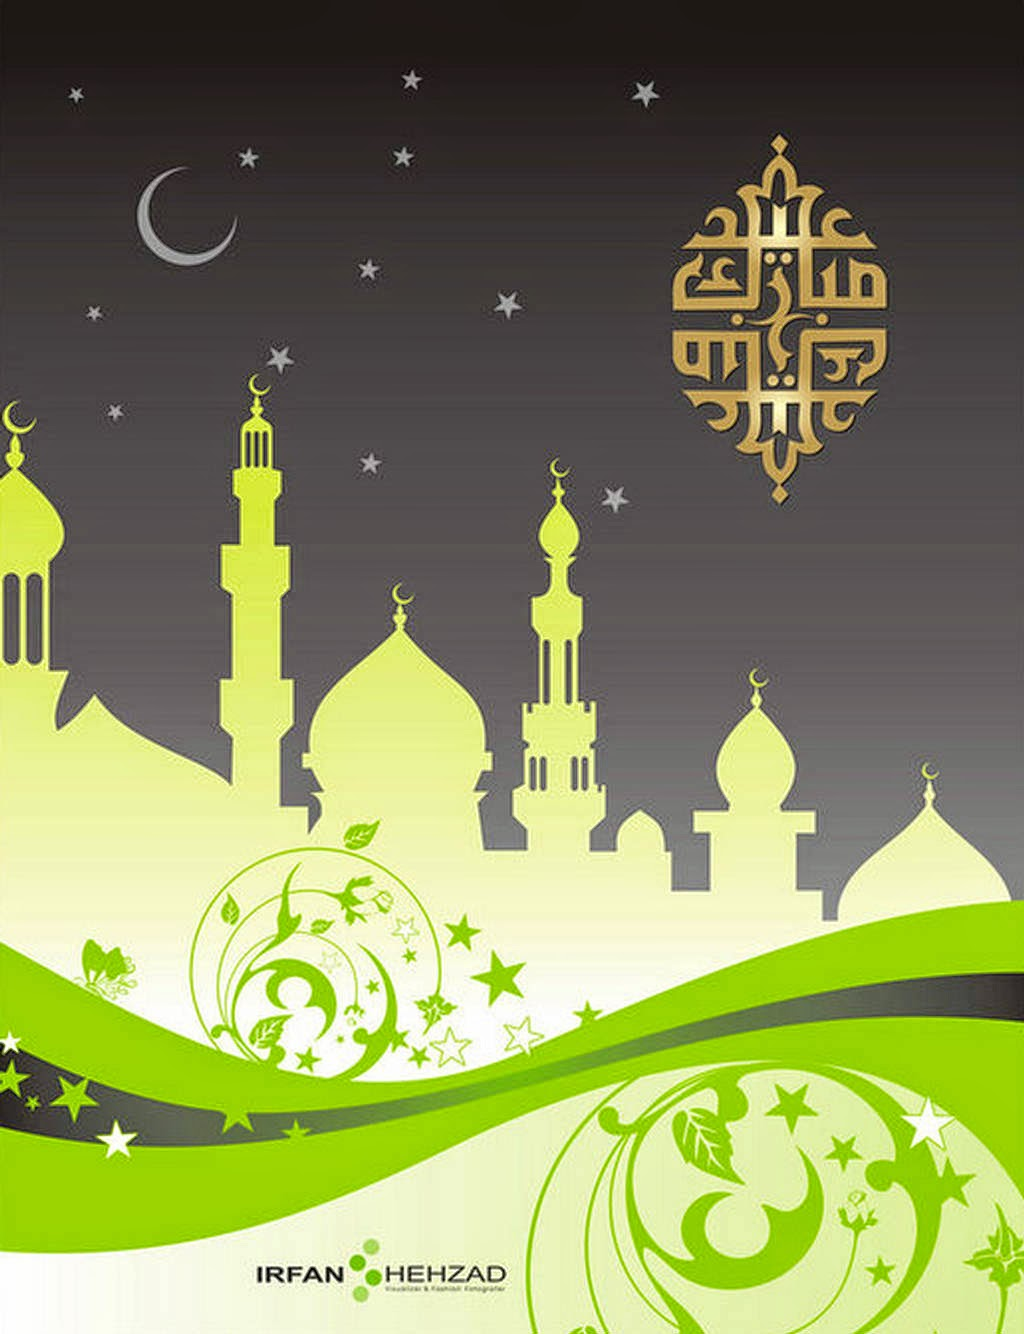 Eid mubarak wallpapers bakra eid mubarak message wallpapers eid free eid ul adha wallpapers kristyandbryce Choice Image